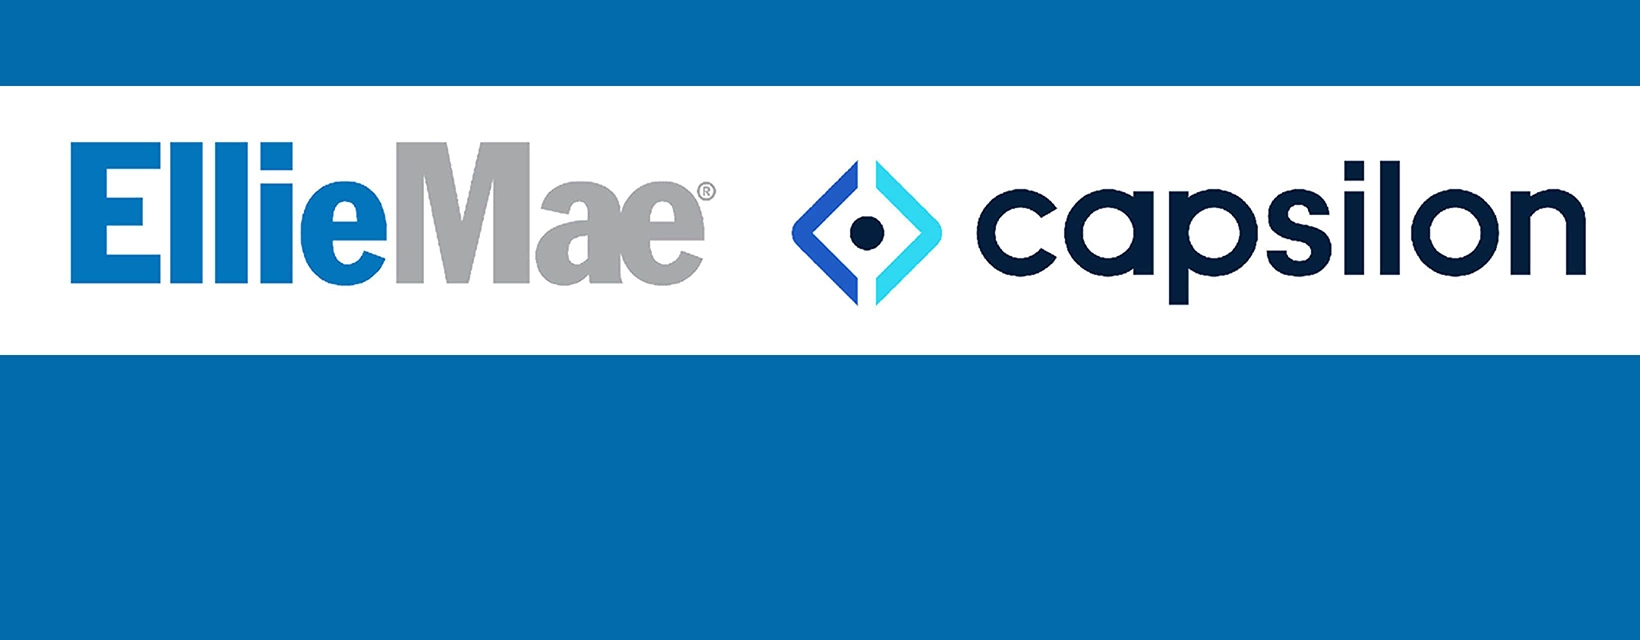 Even More Big News: Ellie Mae Acquires Capsilon